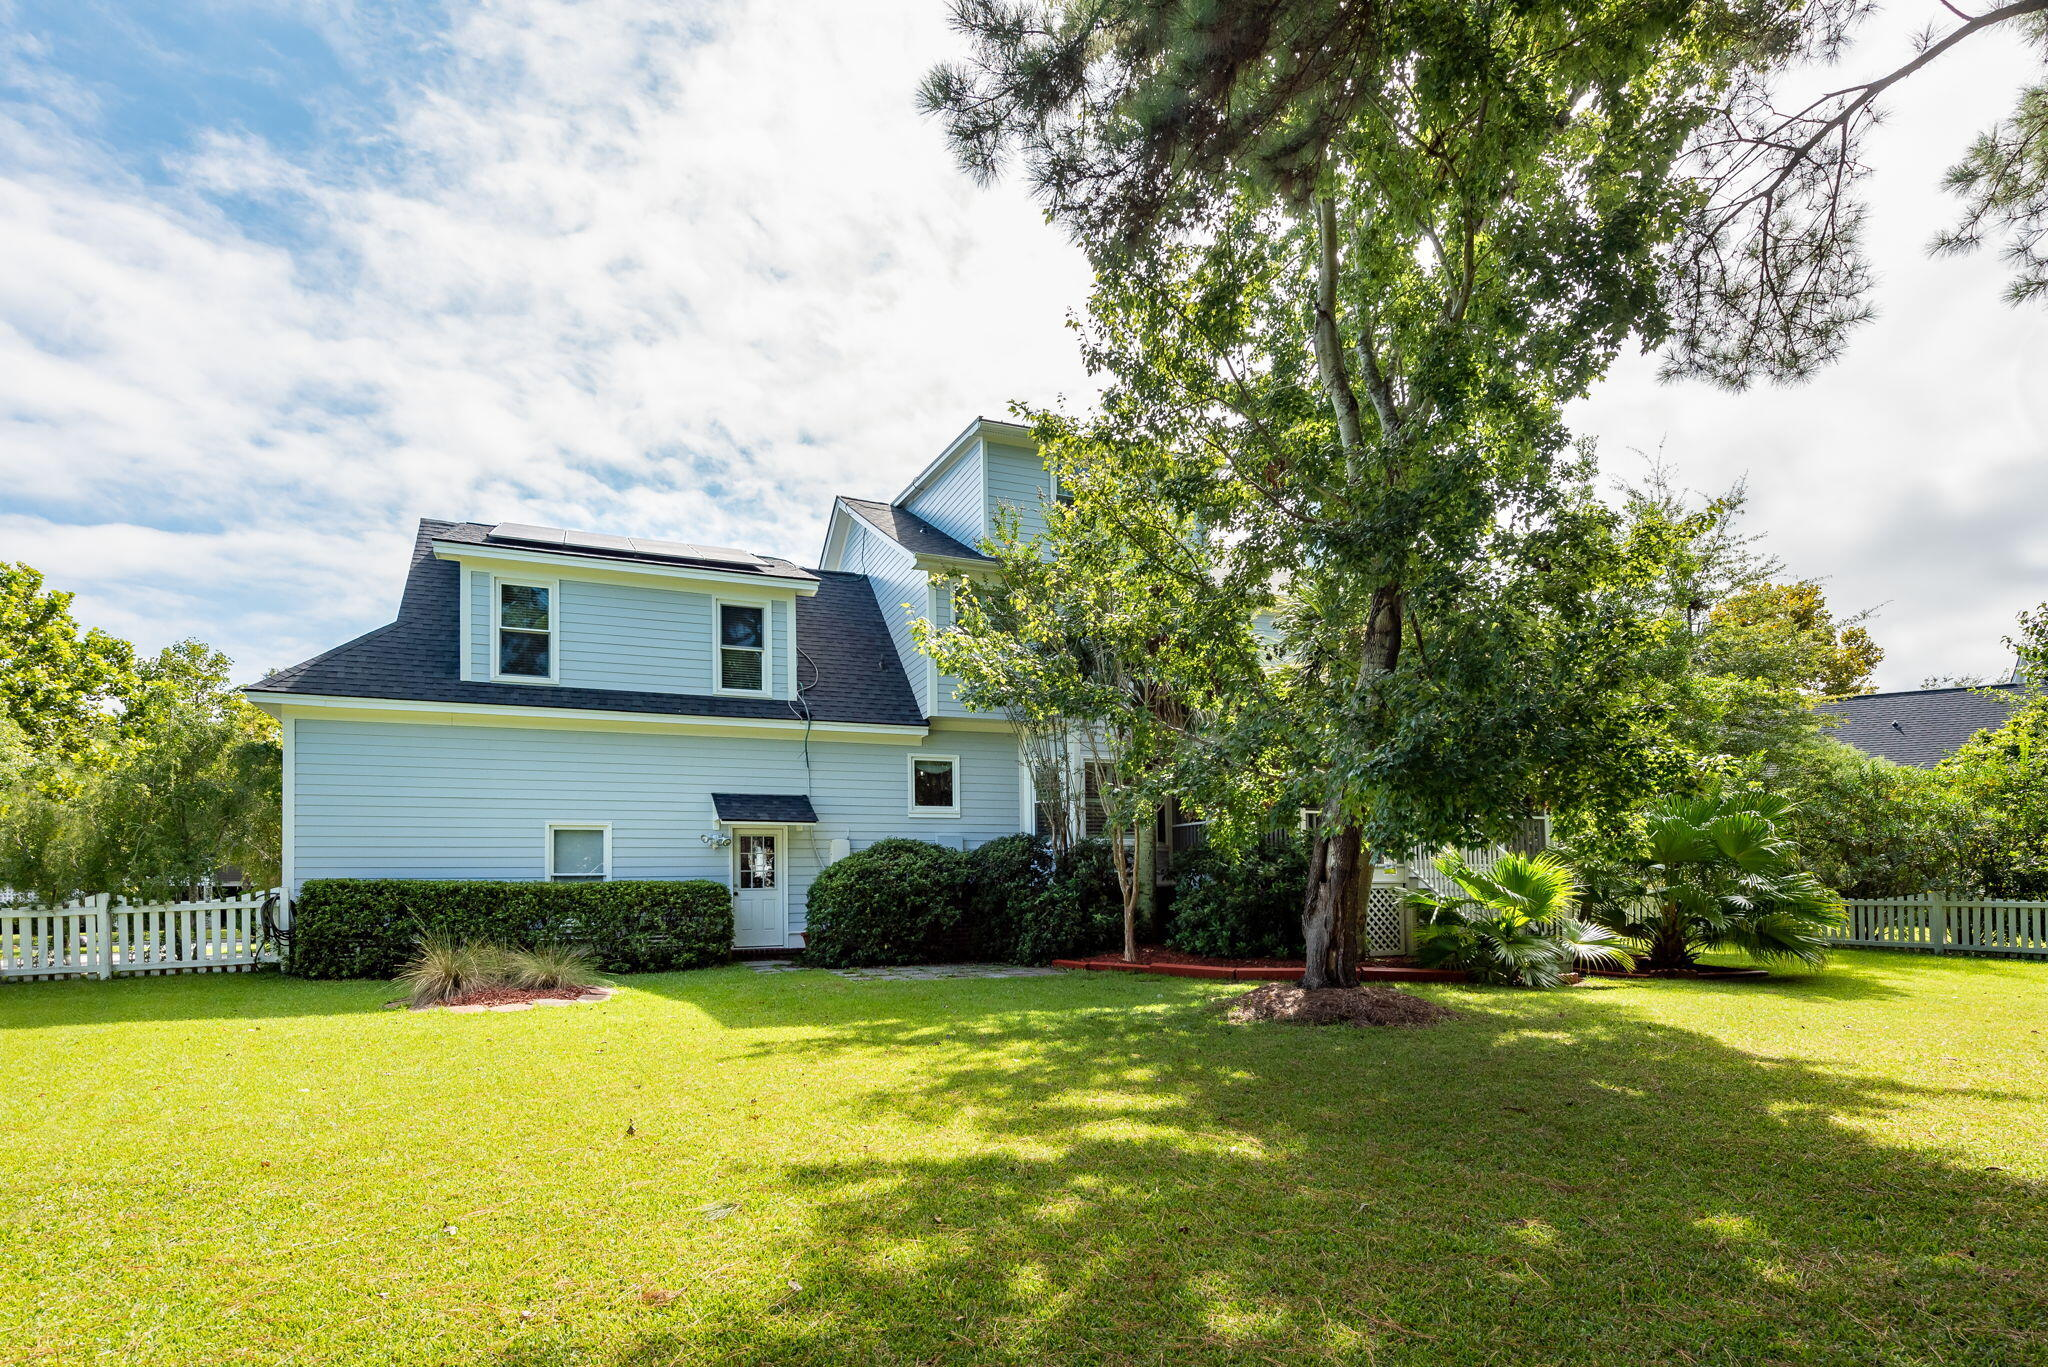 Rivertowne On The Wando Homes For Sale - 2301 Hartfords Bluff, Mount Pleasant, SC - 12